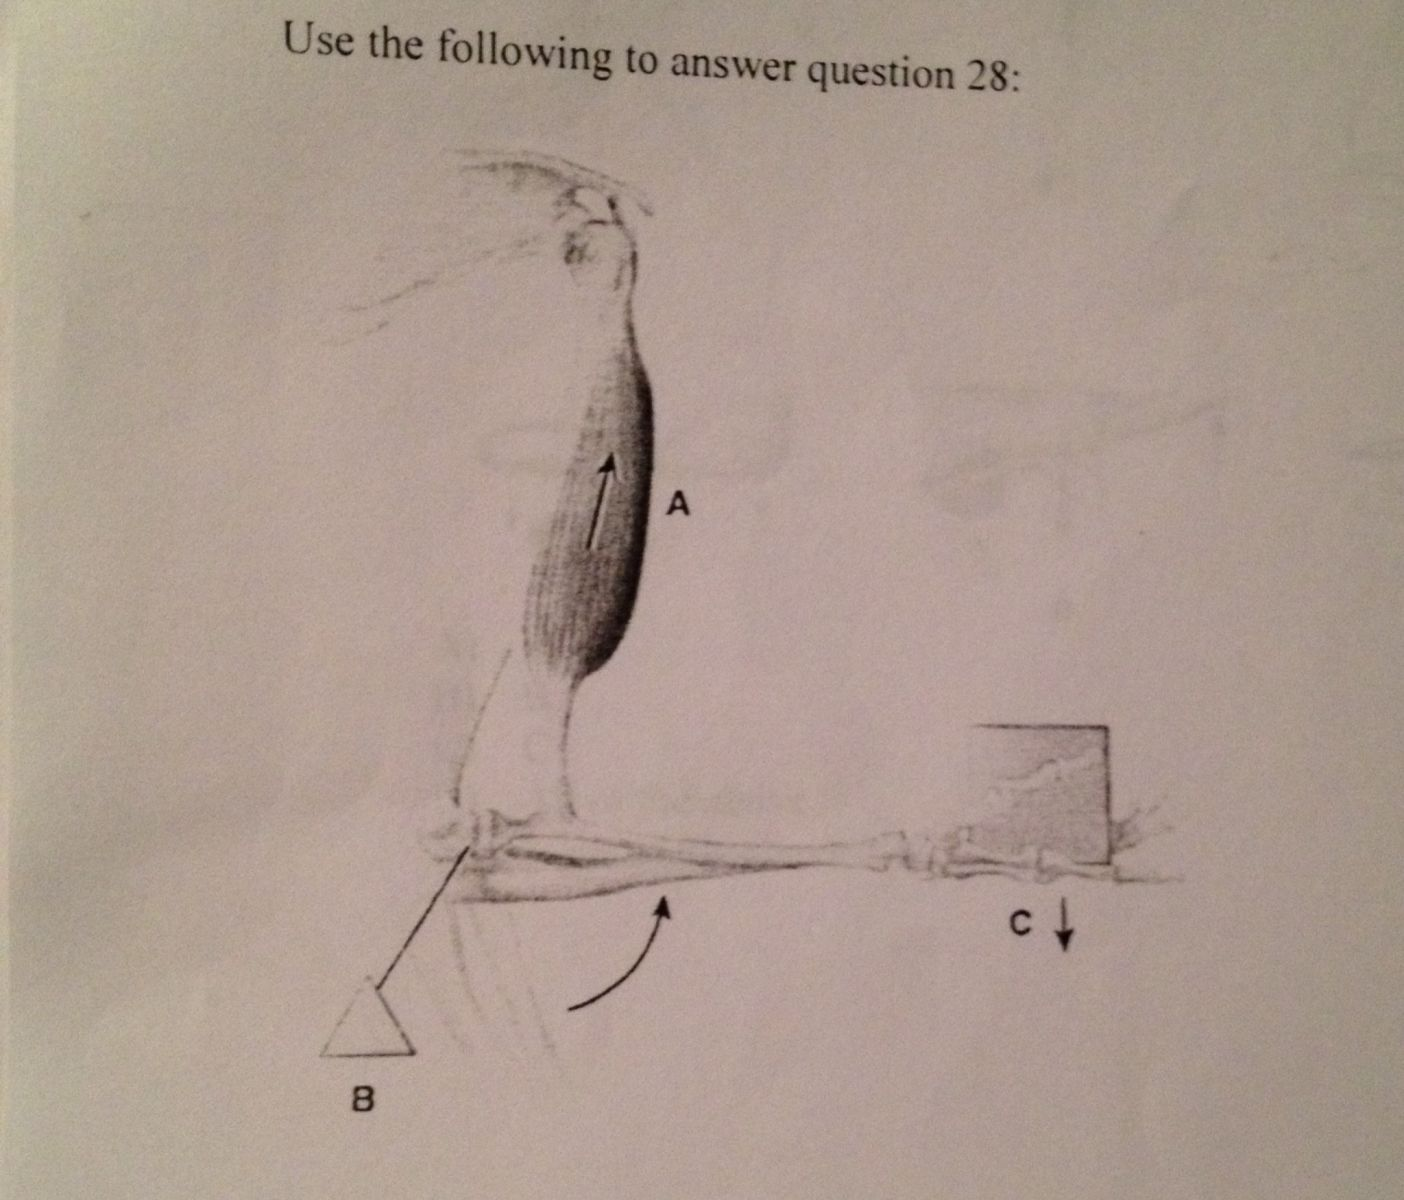 Anatomy And Physiology Exam 3 Part 1 - ProProfs Quiz